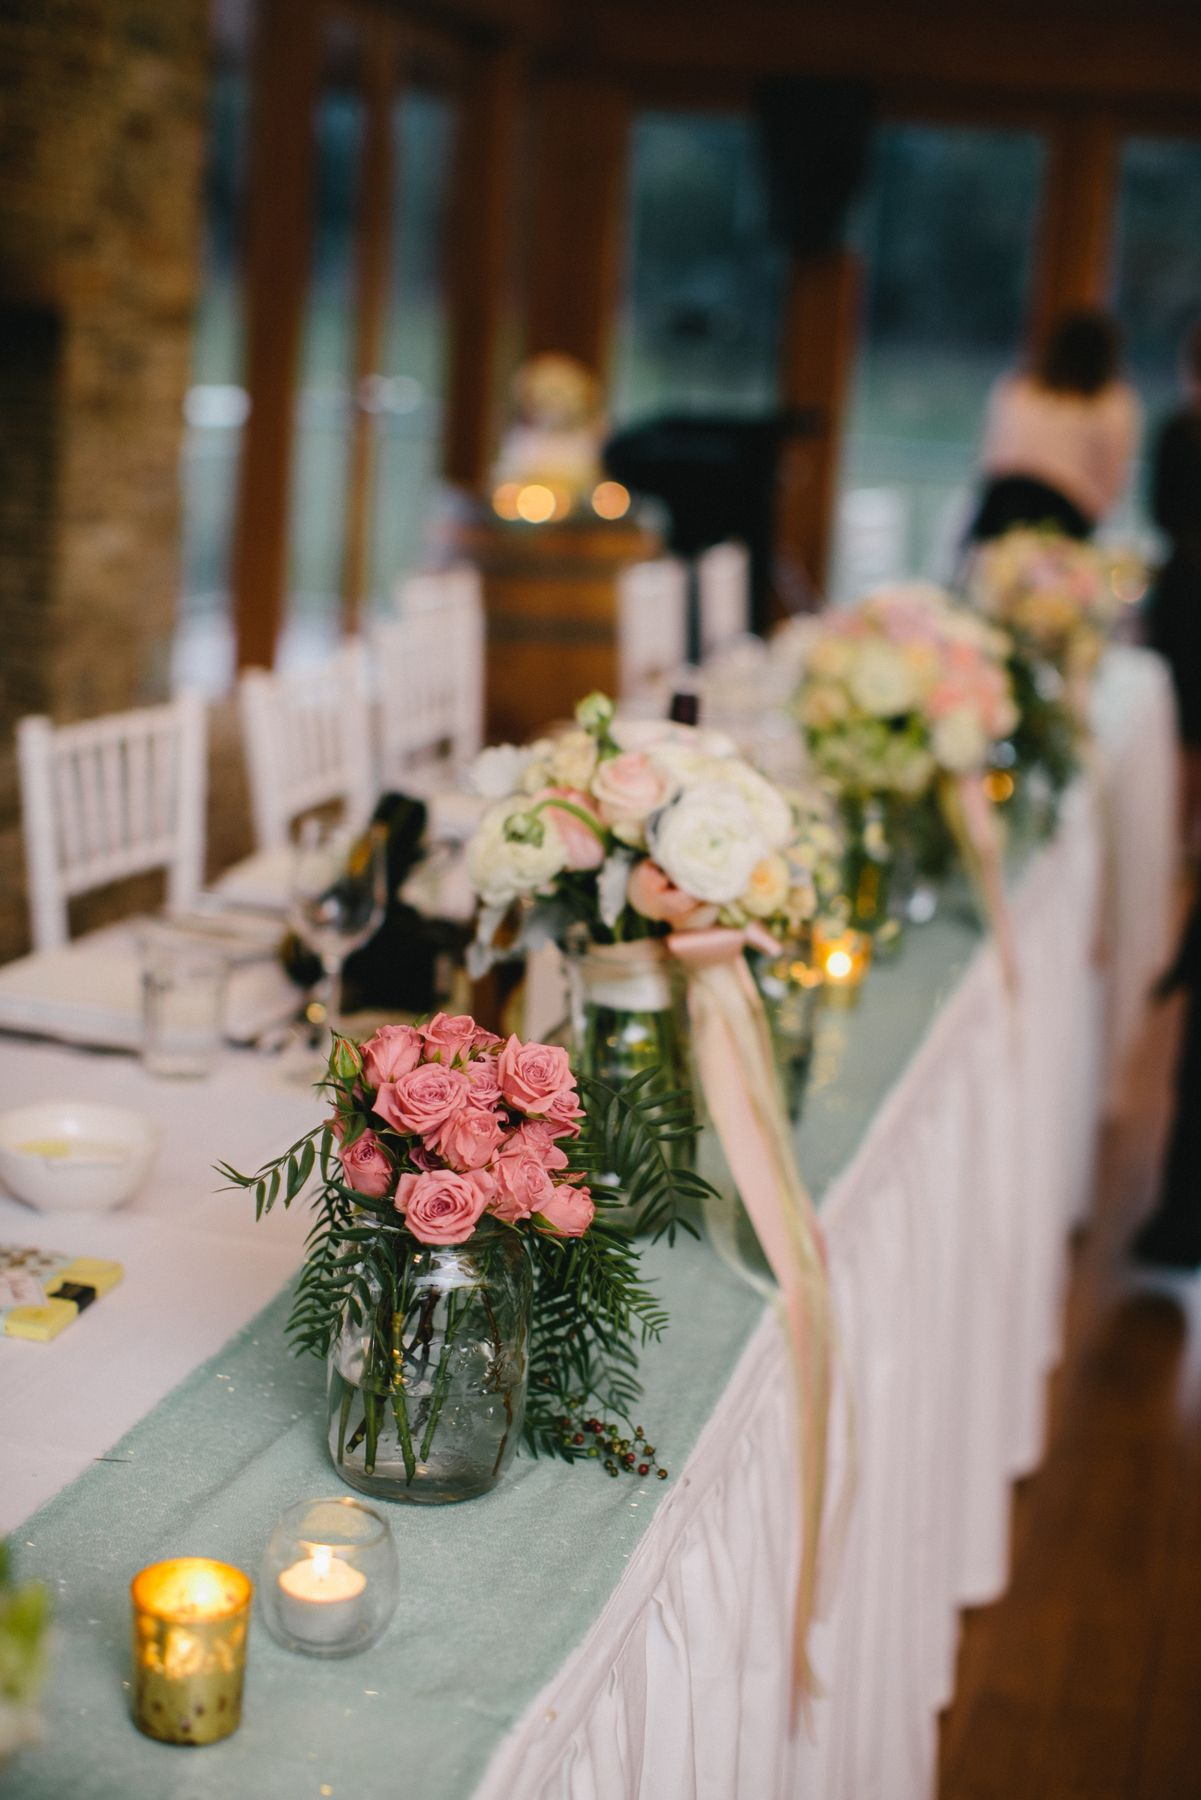 Mint Green Table Runner And Pastel Coloured Flowers Wedding